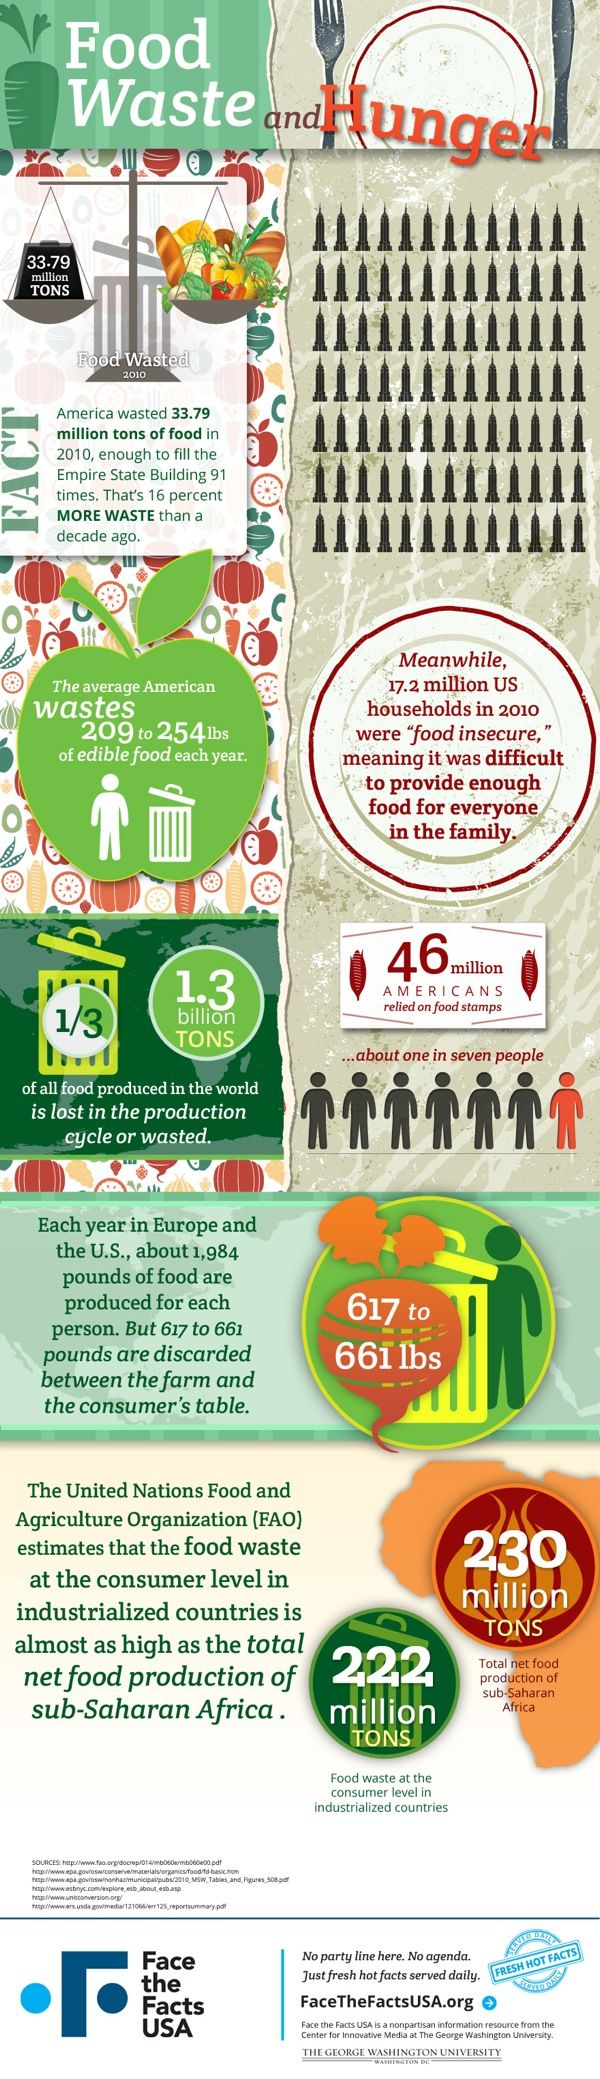 Infographic from Face the Facts USA demonstrates the relationship between waste and hunger